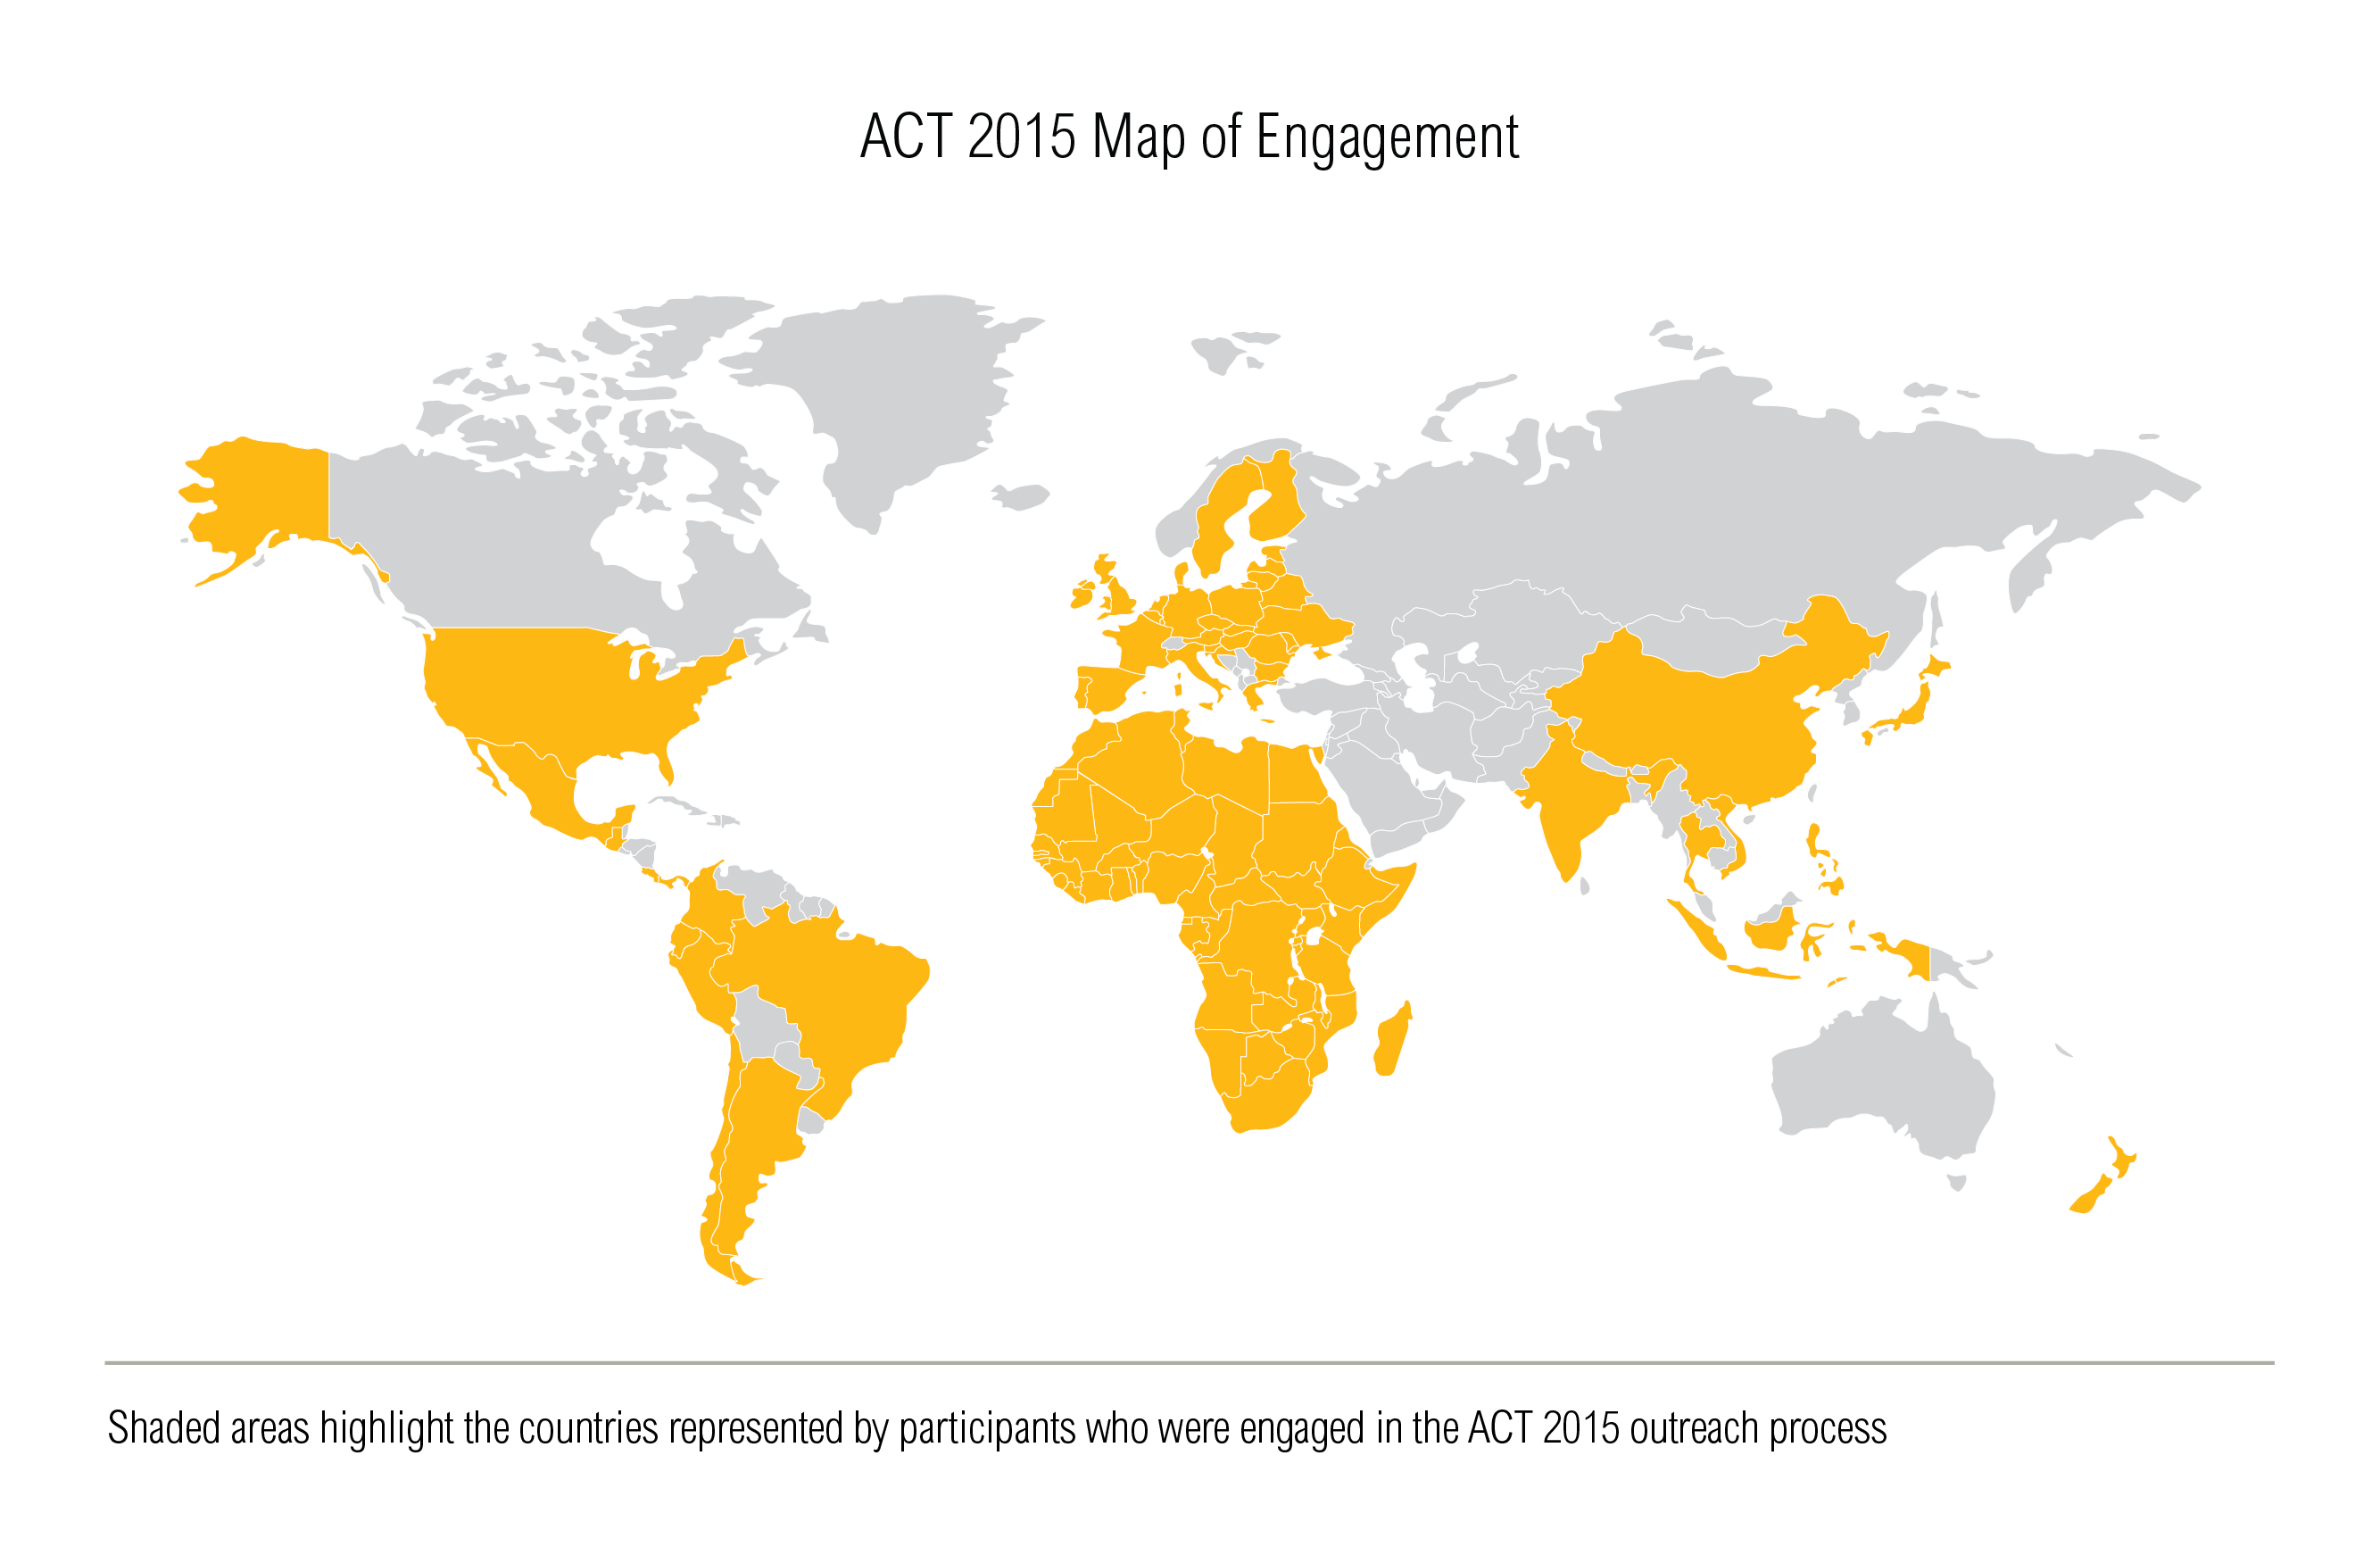 http://wriorg.s3.amazonaws.com/s3fs-public/uploads/act2015_map-03.png